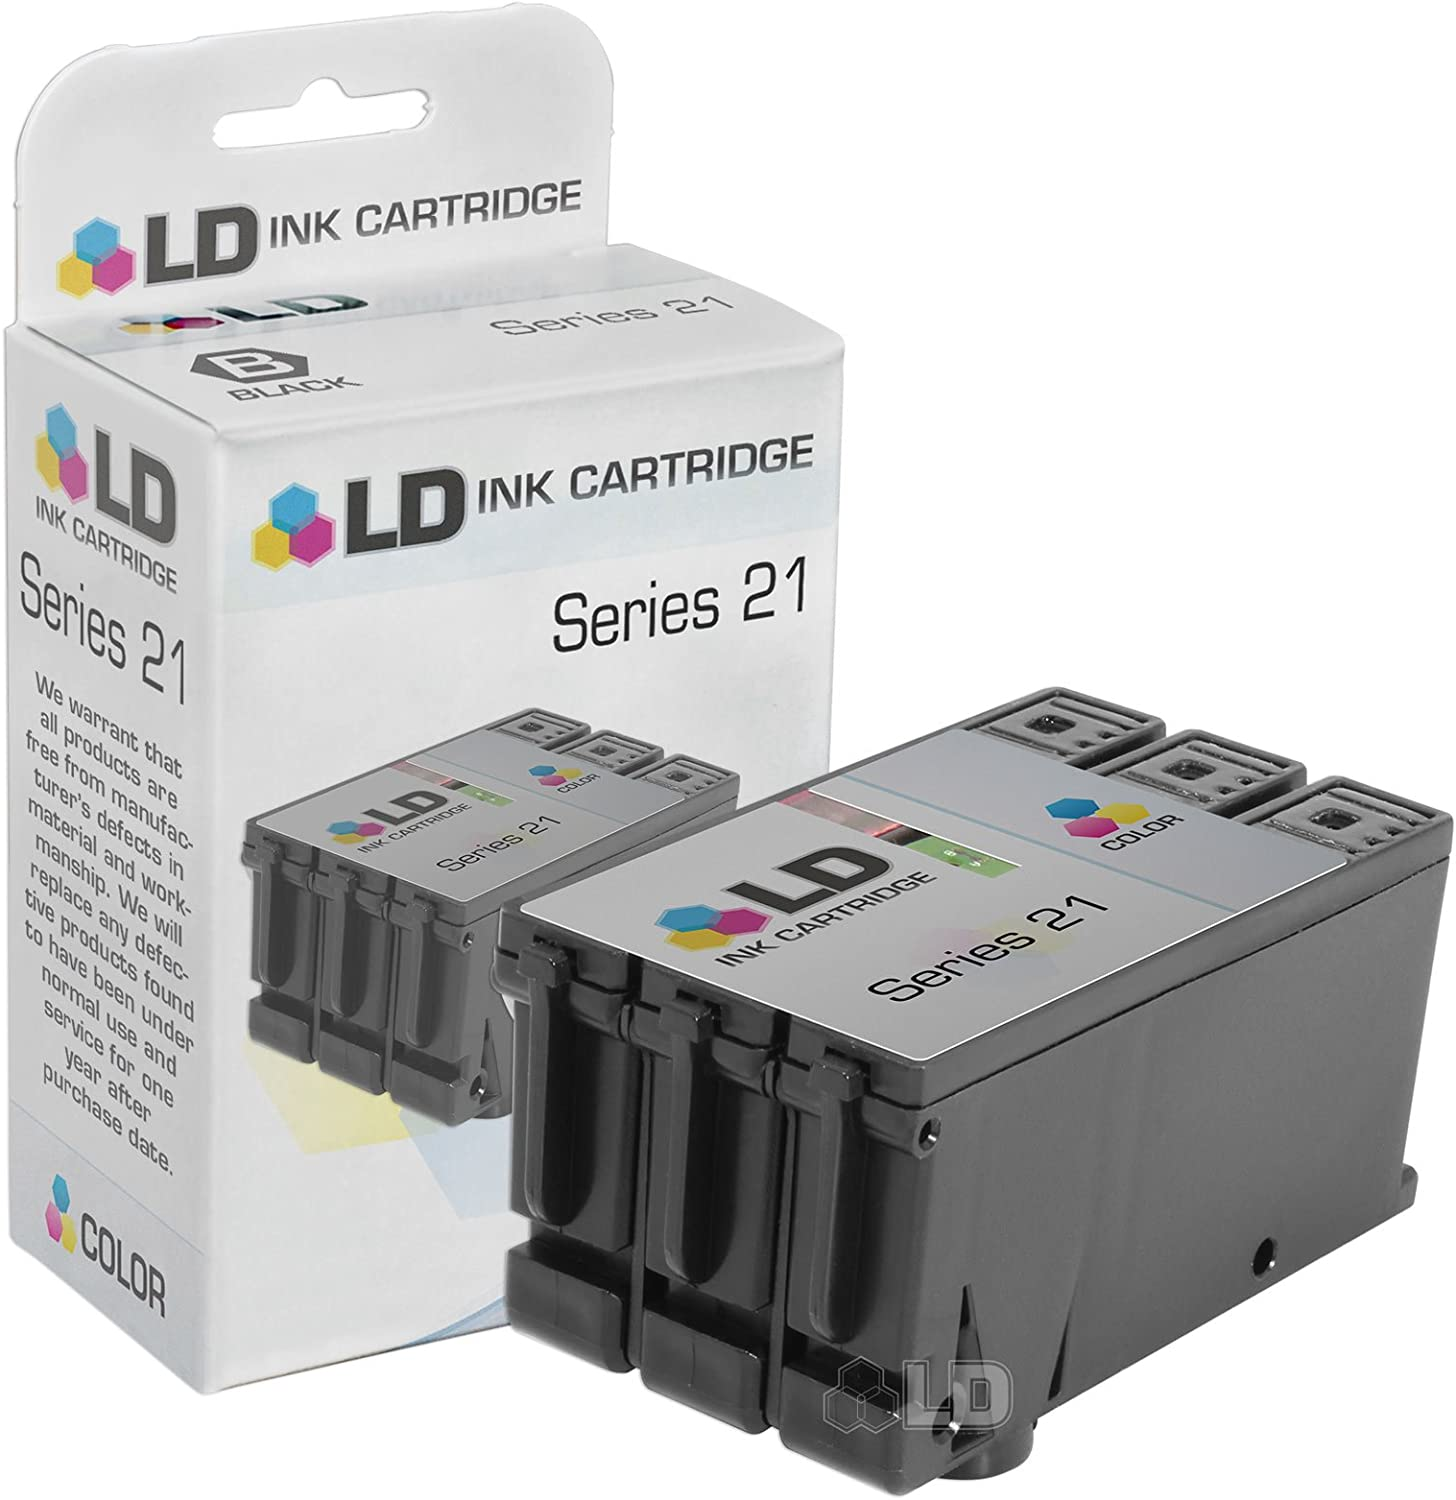 LD Compatible Ink Cartridge Replacement for Dell Y499D 330-5274 Series 21 (Color)